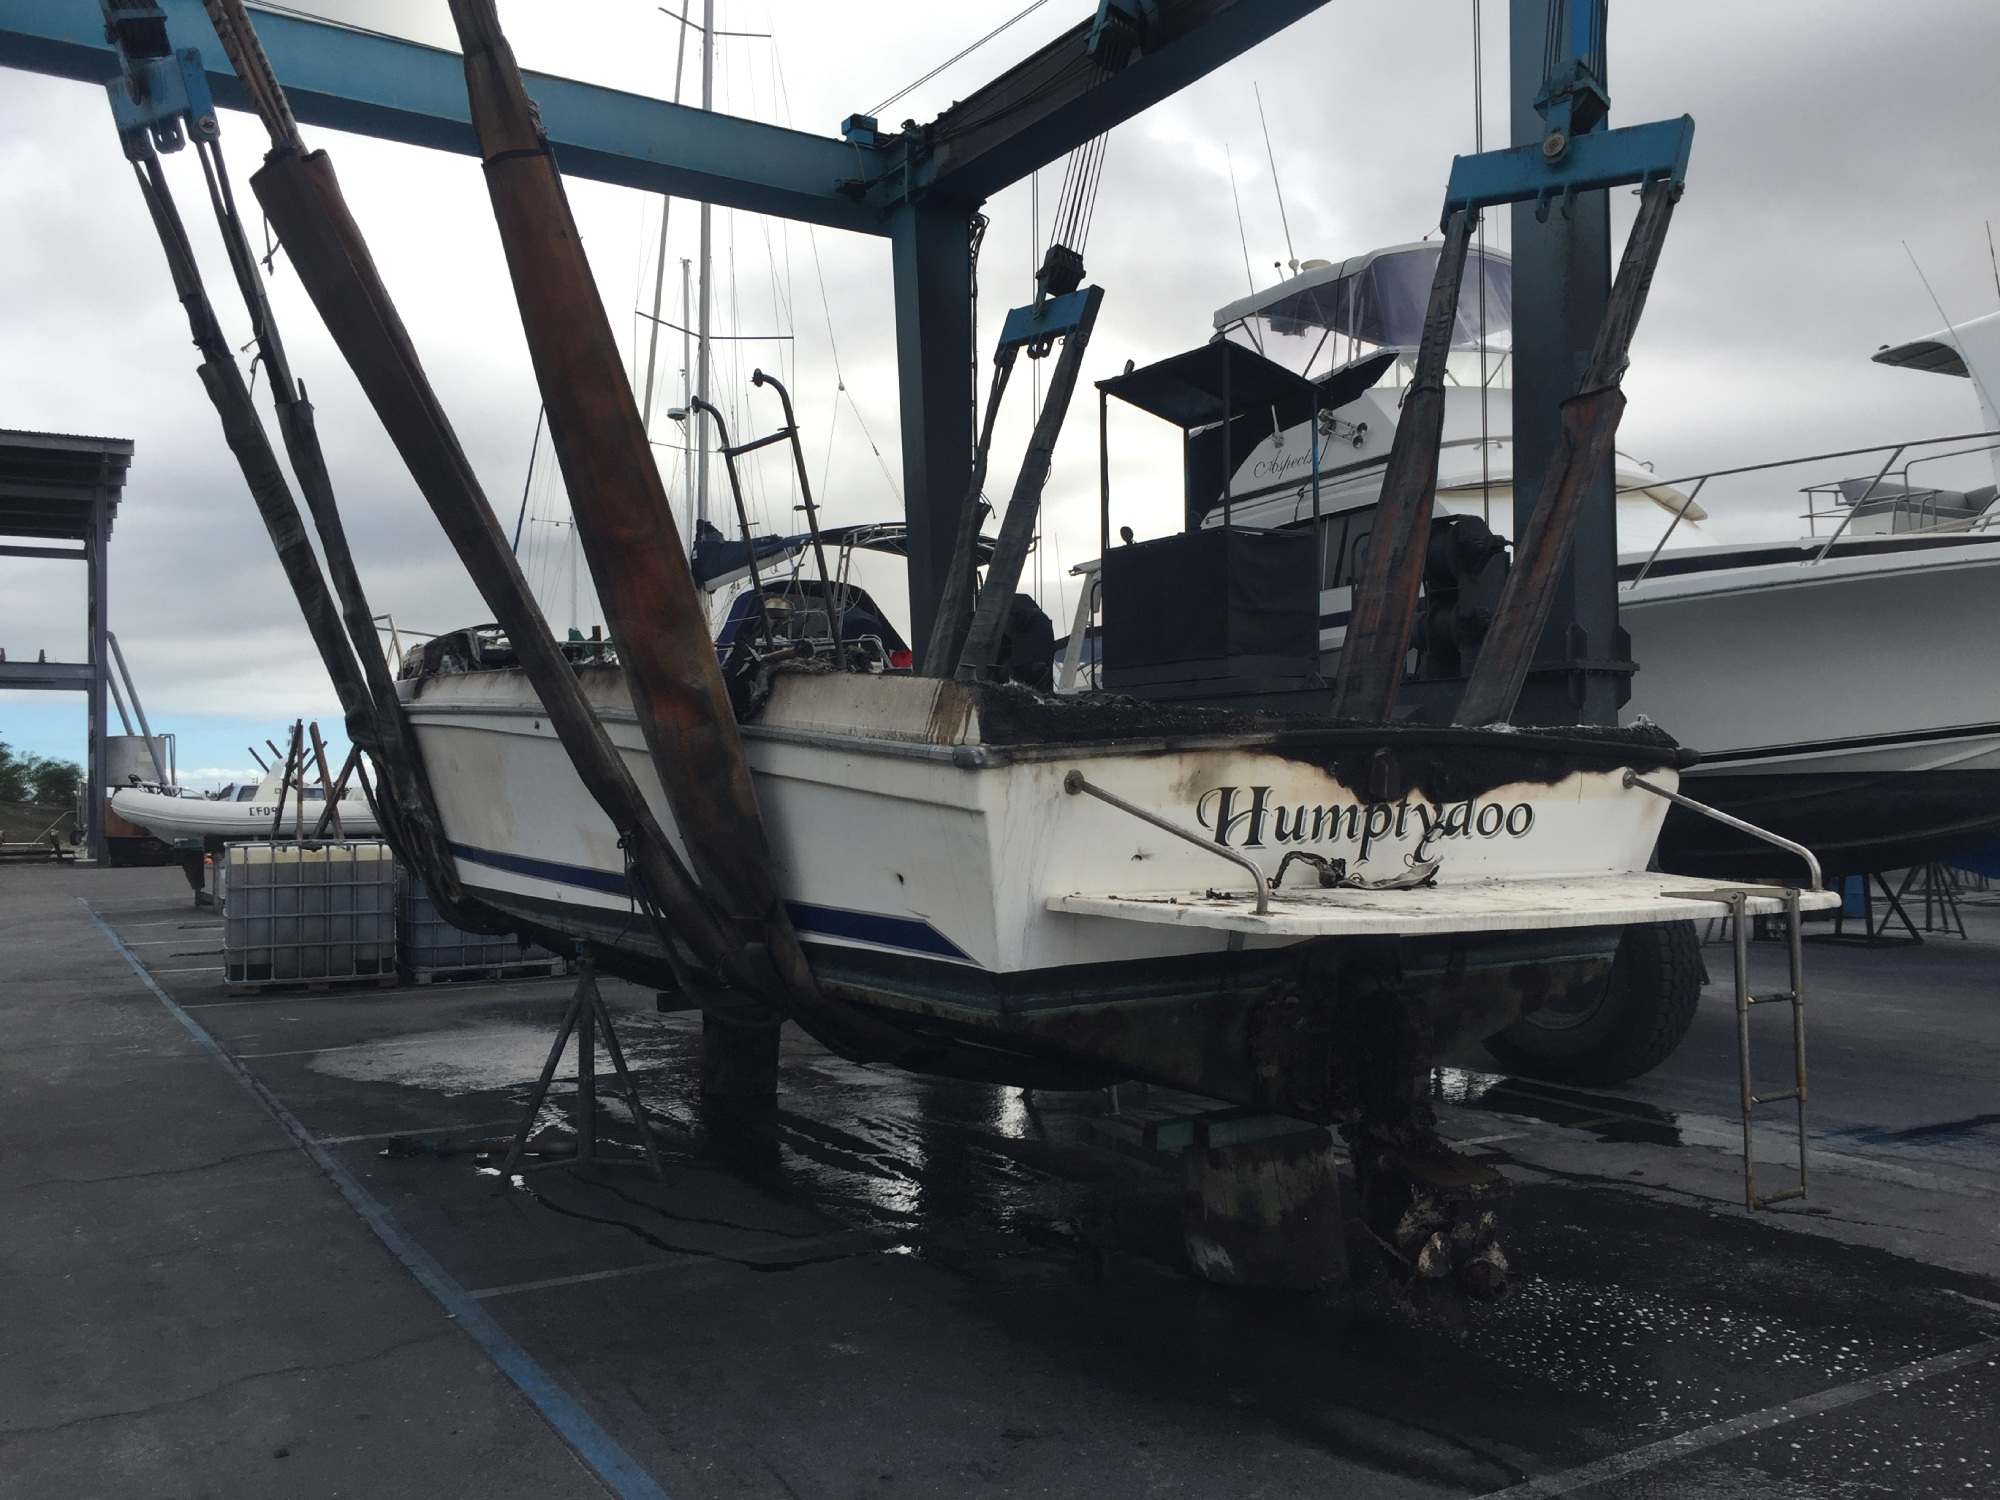 The boat was destroyed in the blaze. Picture: Martin Kennealey